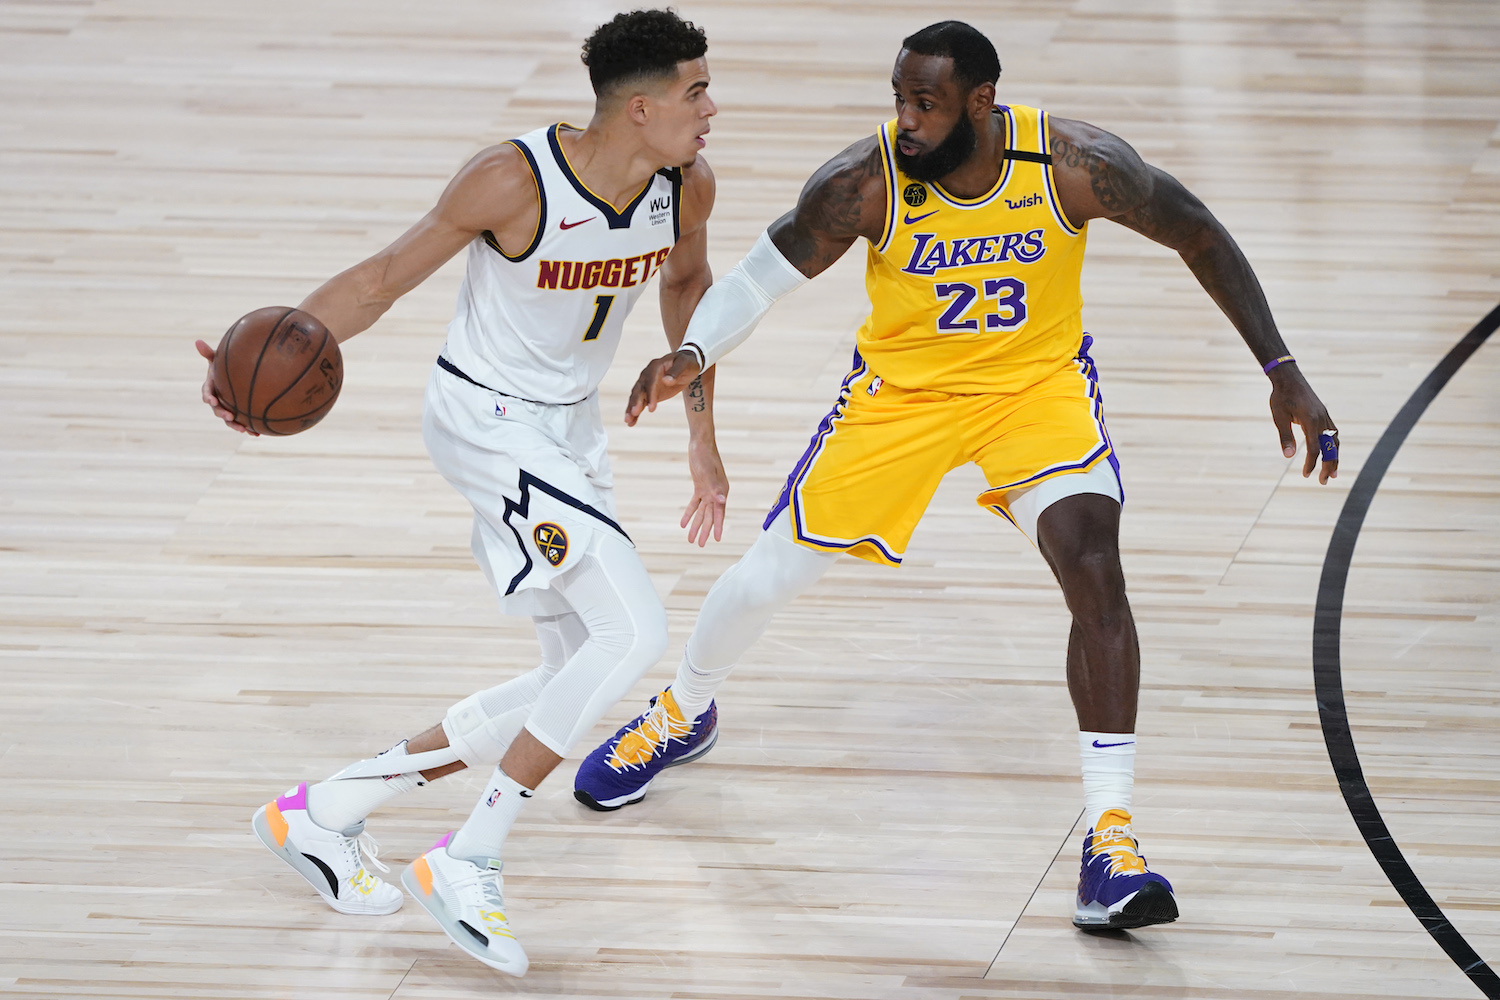 Michael Porter Jr. Rejected by Clippers, Cost Him Millions, and Now Ready to Prove Them Wrong